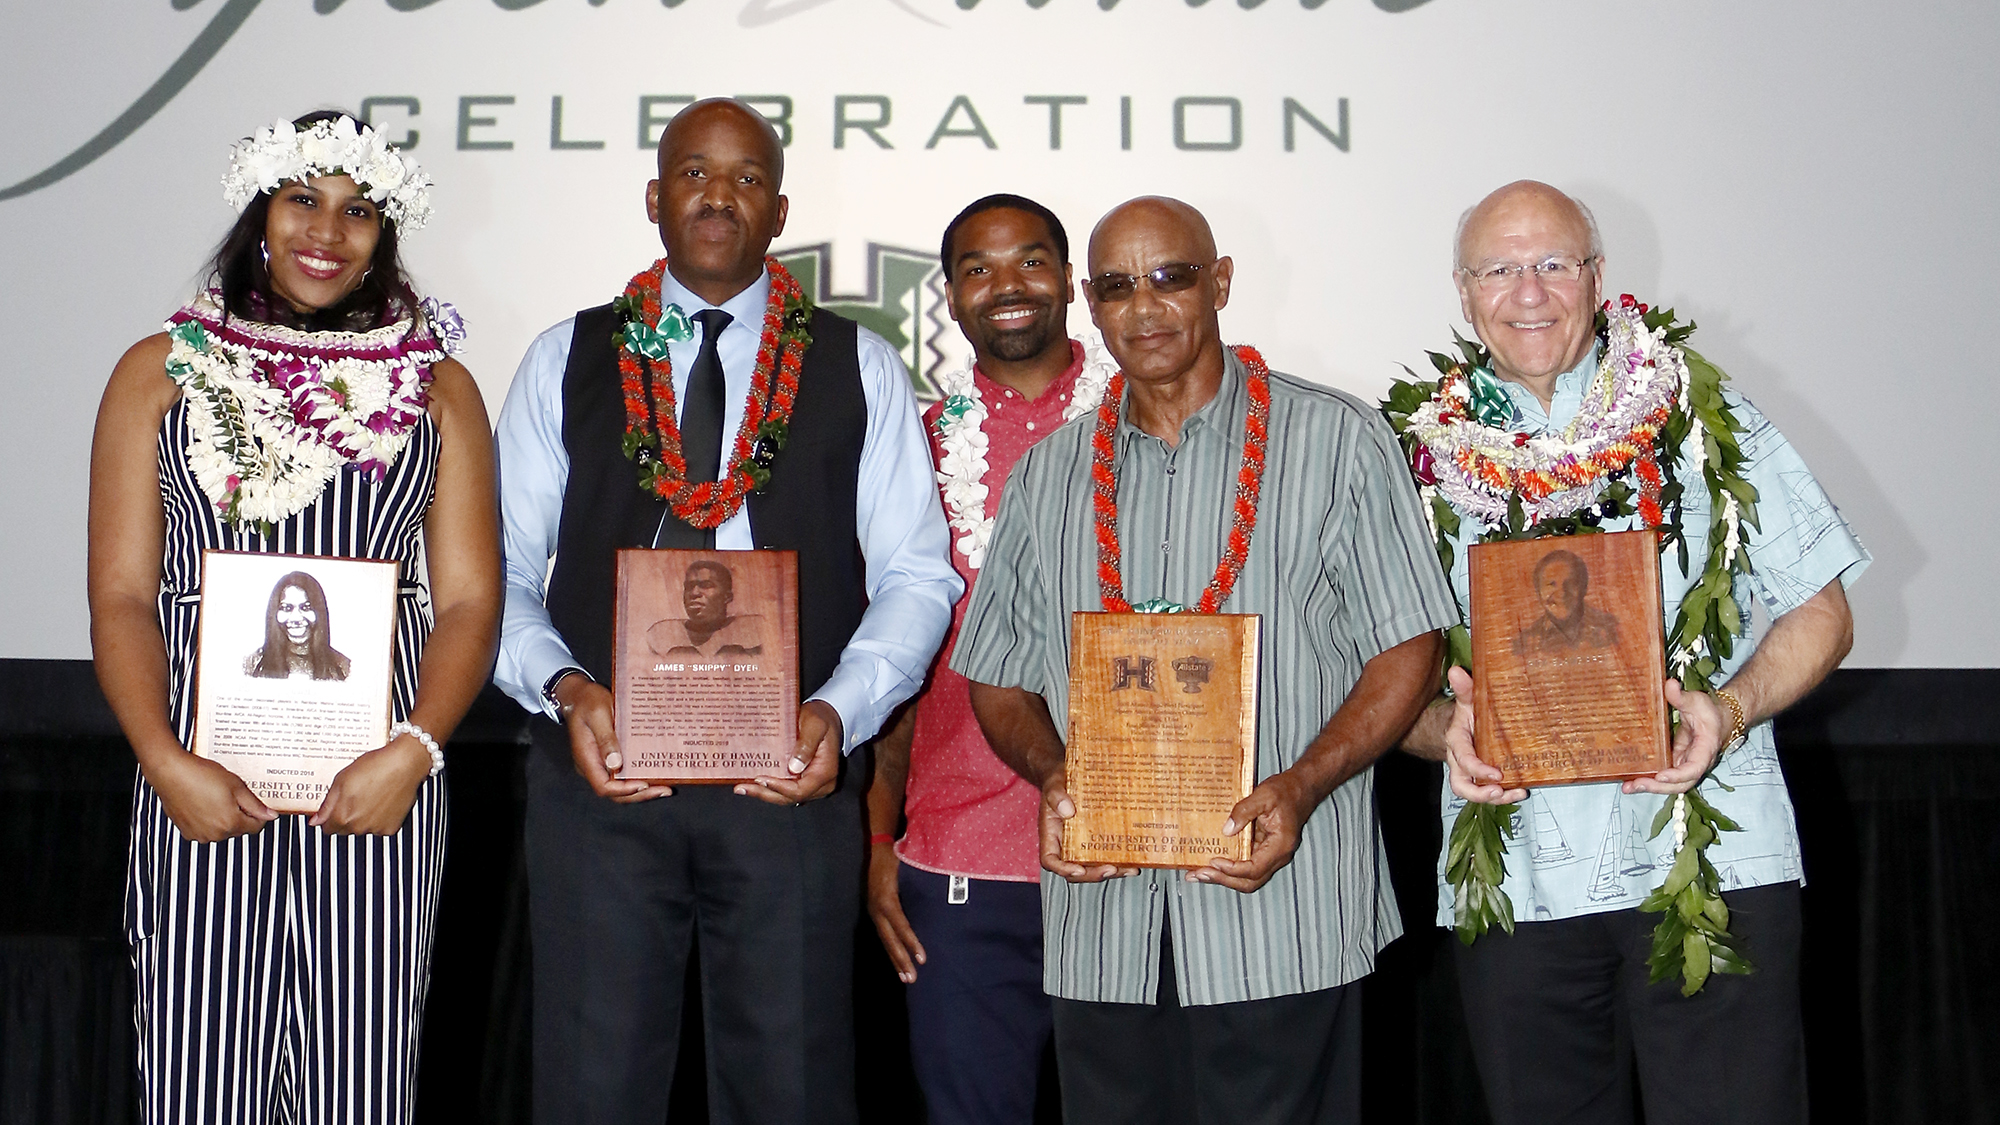 green white celebration honors class of 2018 inductees